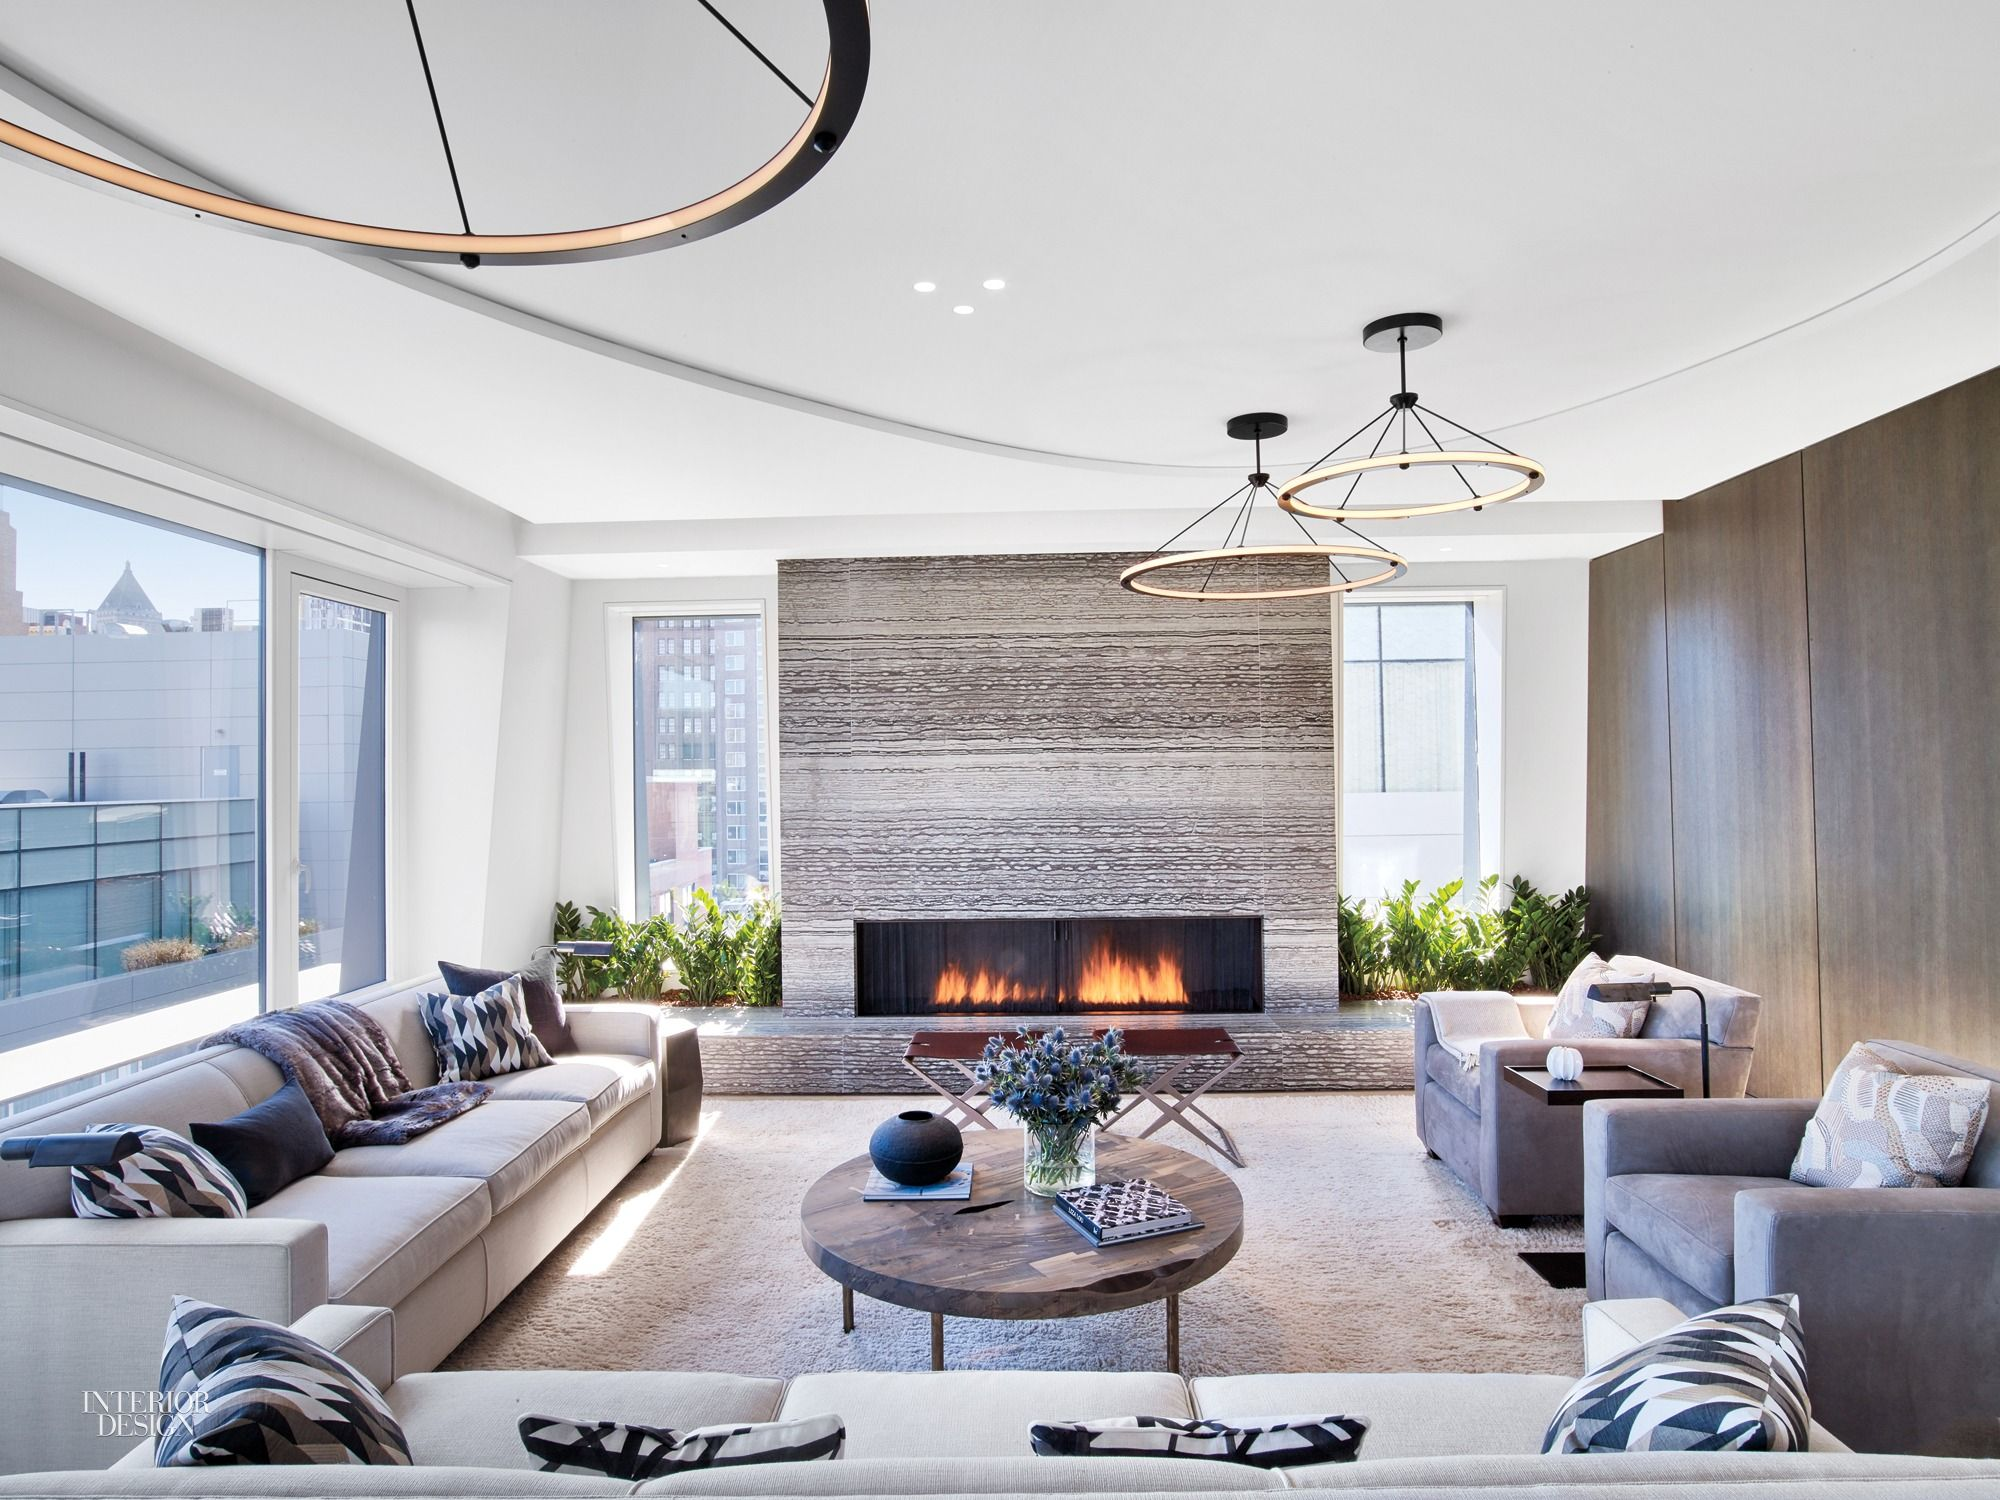 11 Simply Amazing Fireplaces 11 Simply Amazing